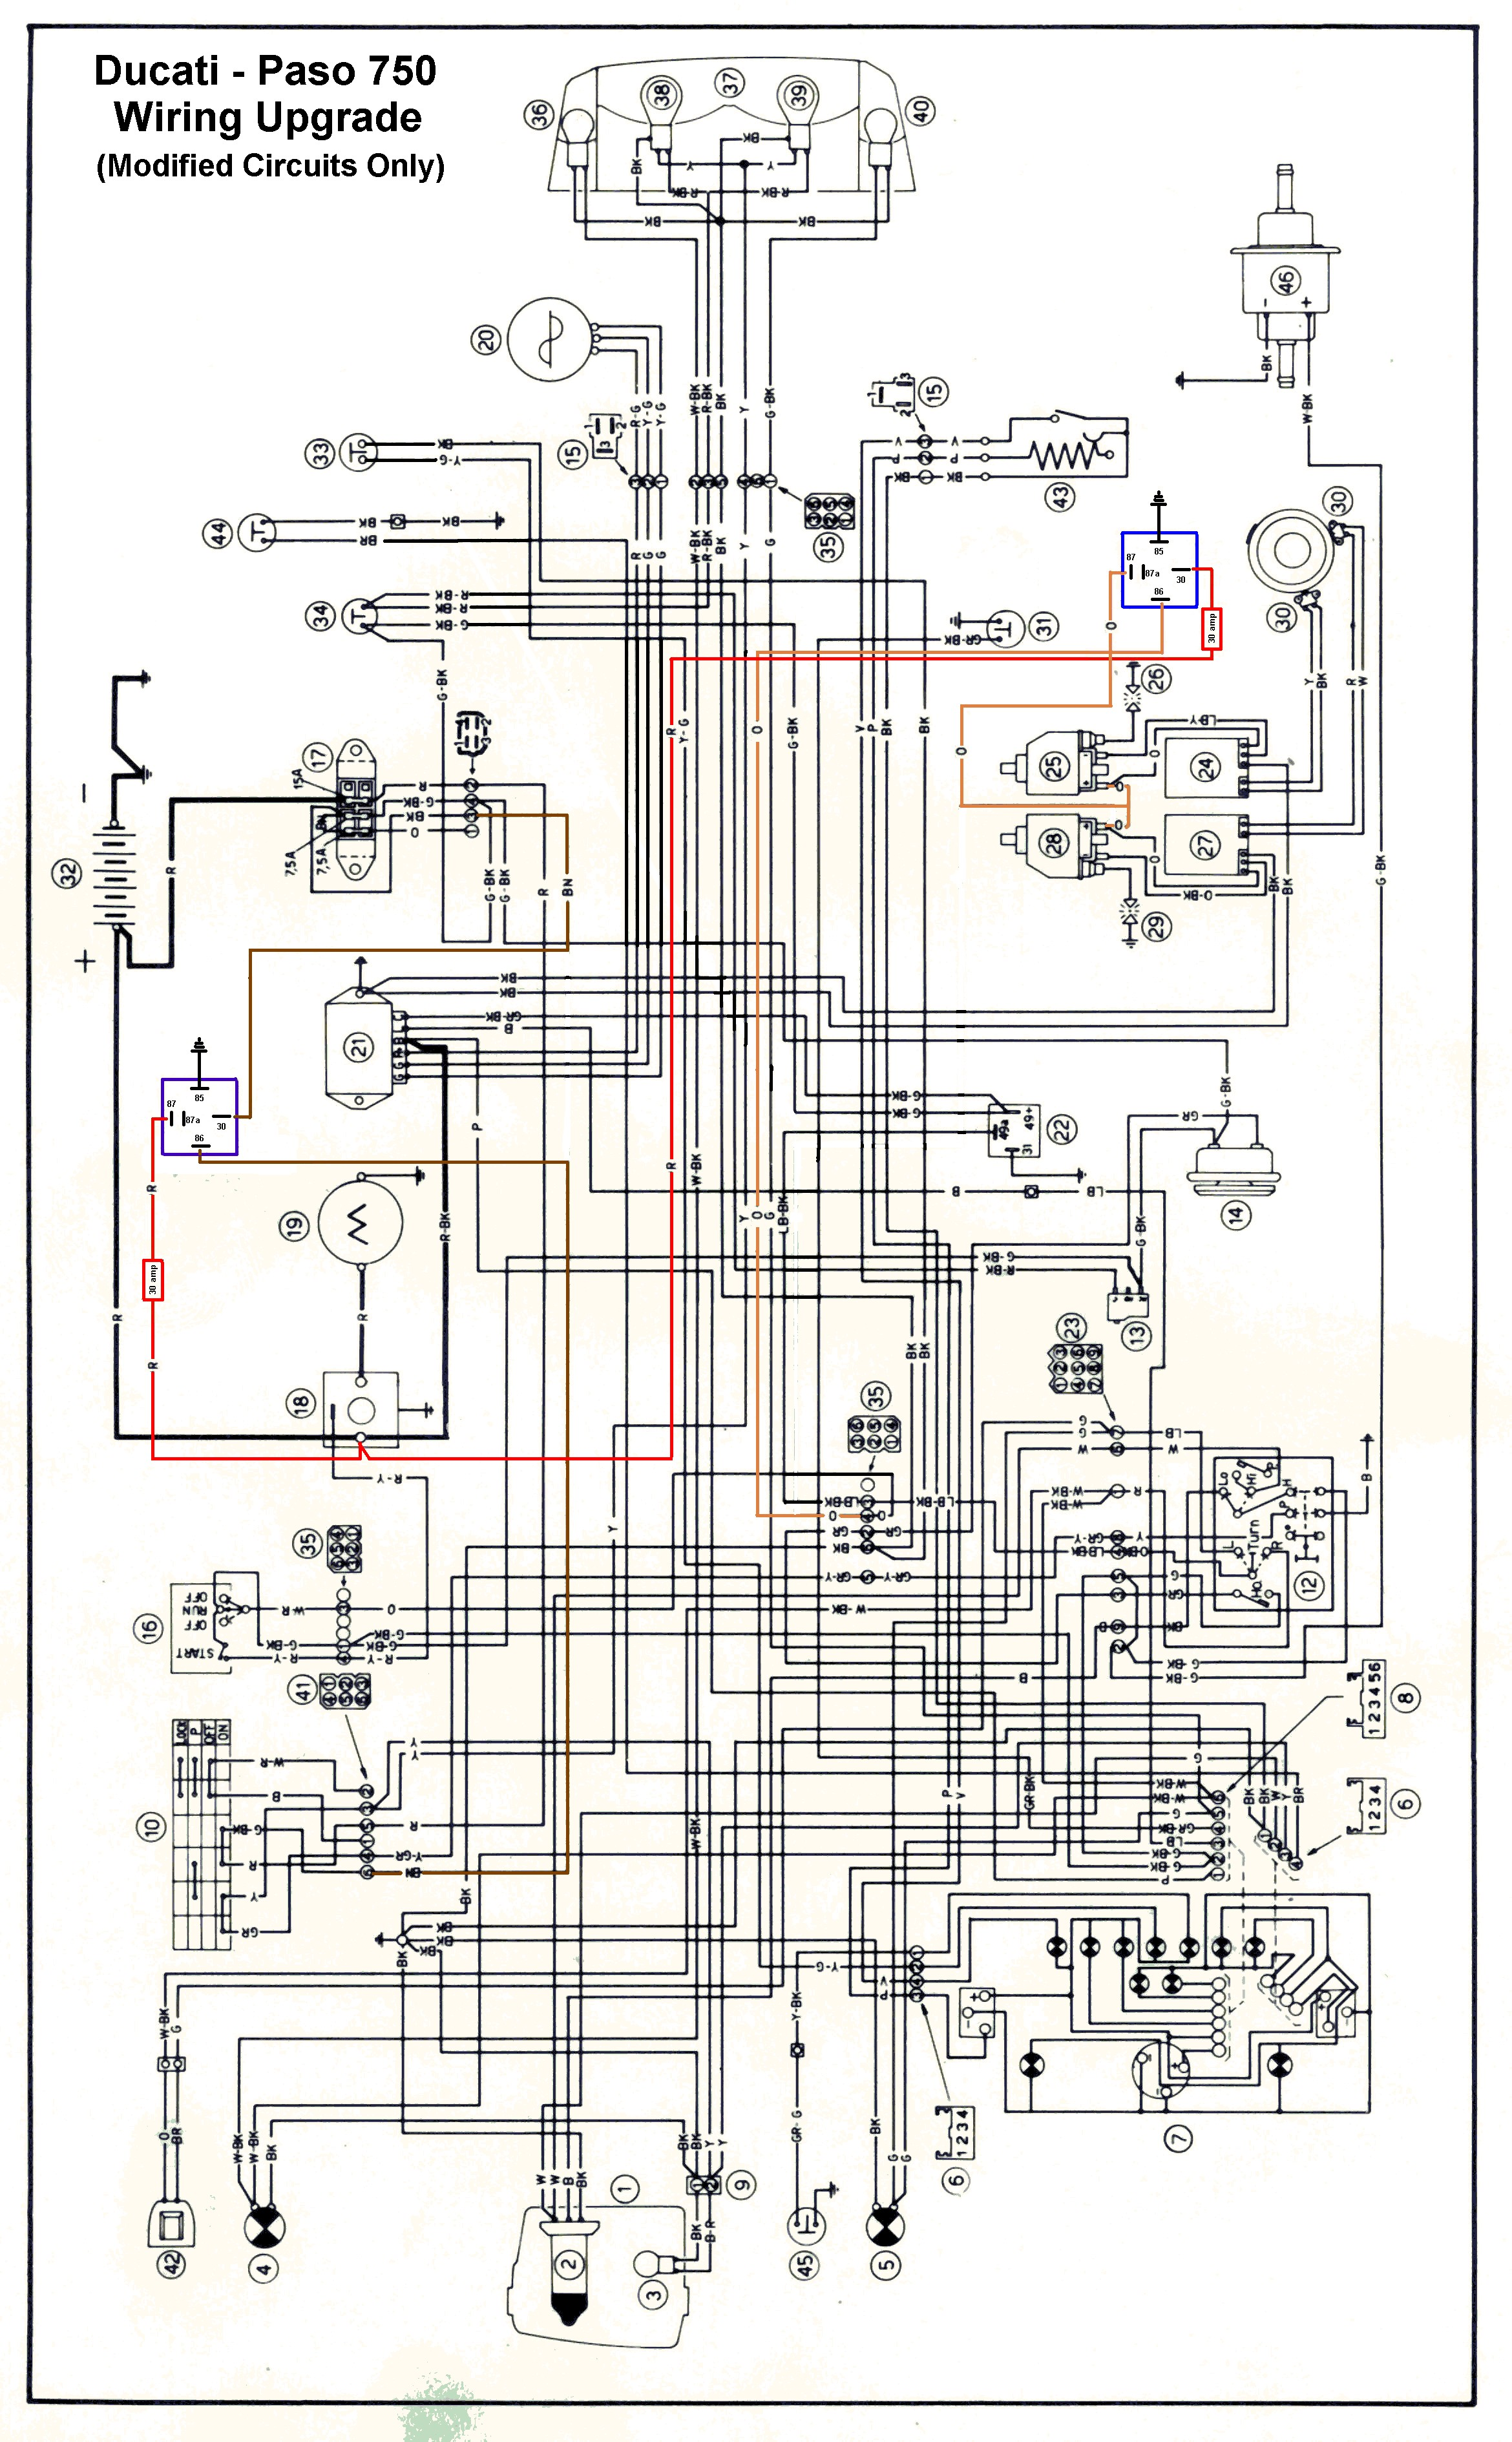 warn a2000 upgrade wiring diagram mitchell diagrams the paso project